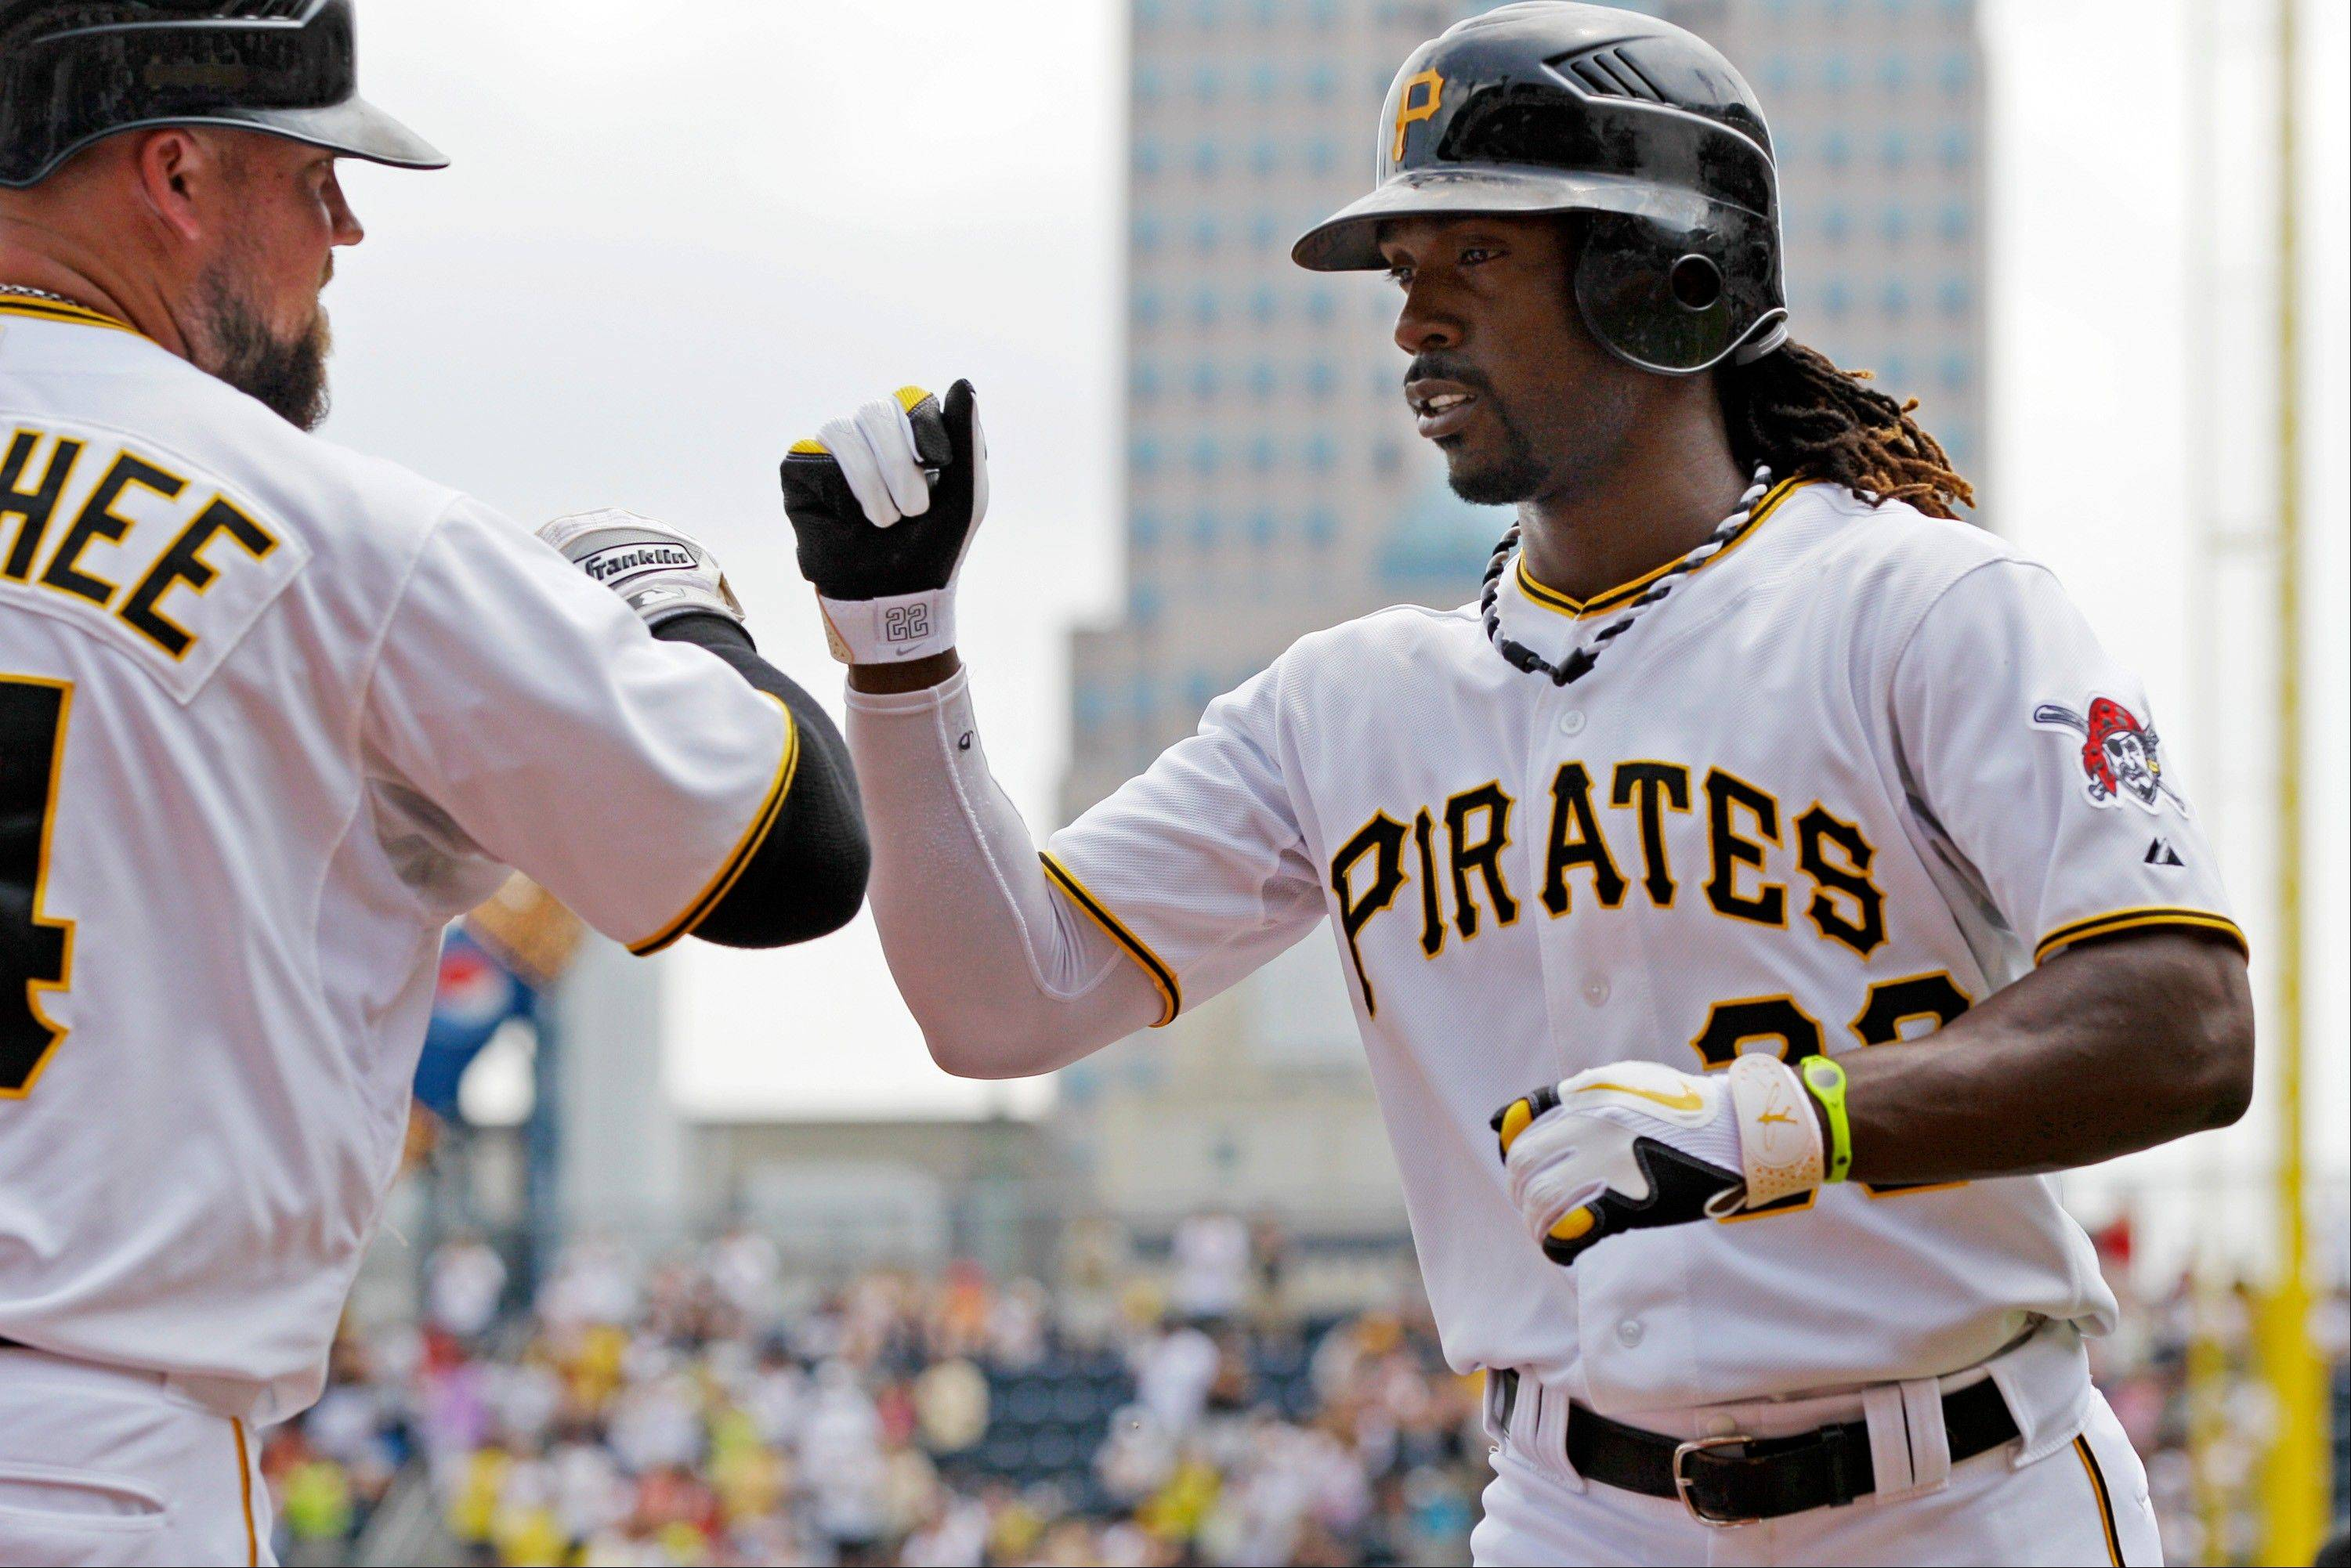 The Pirates' Andrew McCutchen, right, celebrates with teammate Casey McGhee after hitting a two-run home run off San Francisco pitcher Tim Lincecum during the first inning Sunday in Pittsburgh.